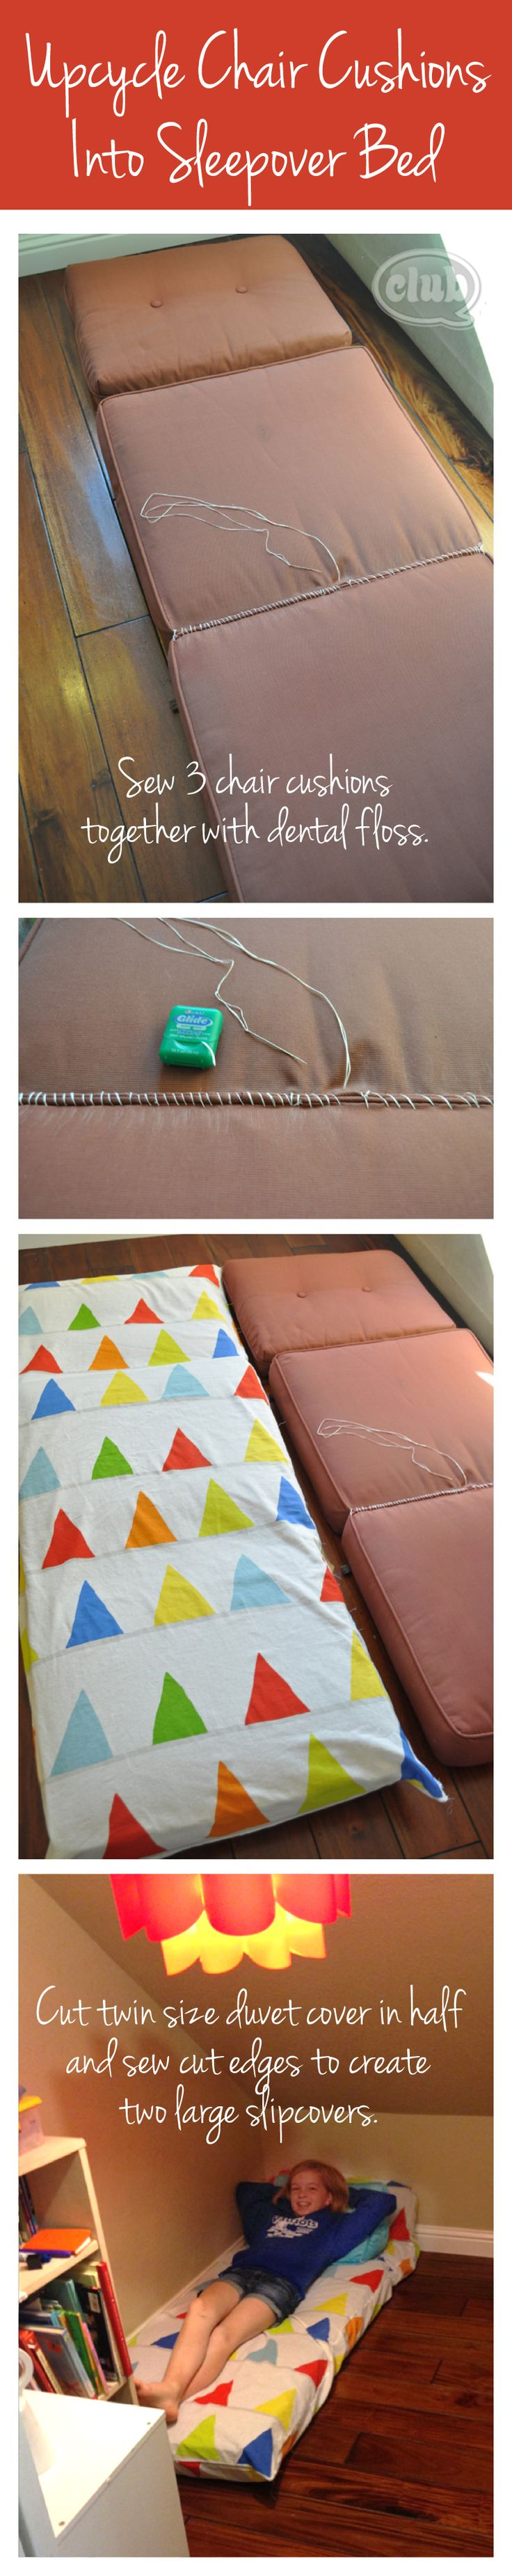 Reinventing Outdoor Cushions into Sleepover Mats | Tween Crafts - Connecting Mom and Daughter through crafting